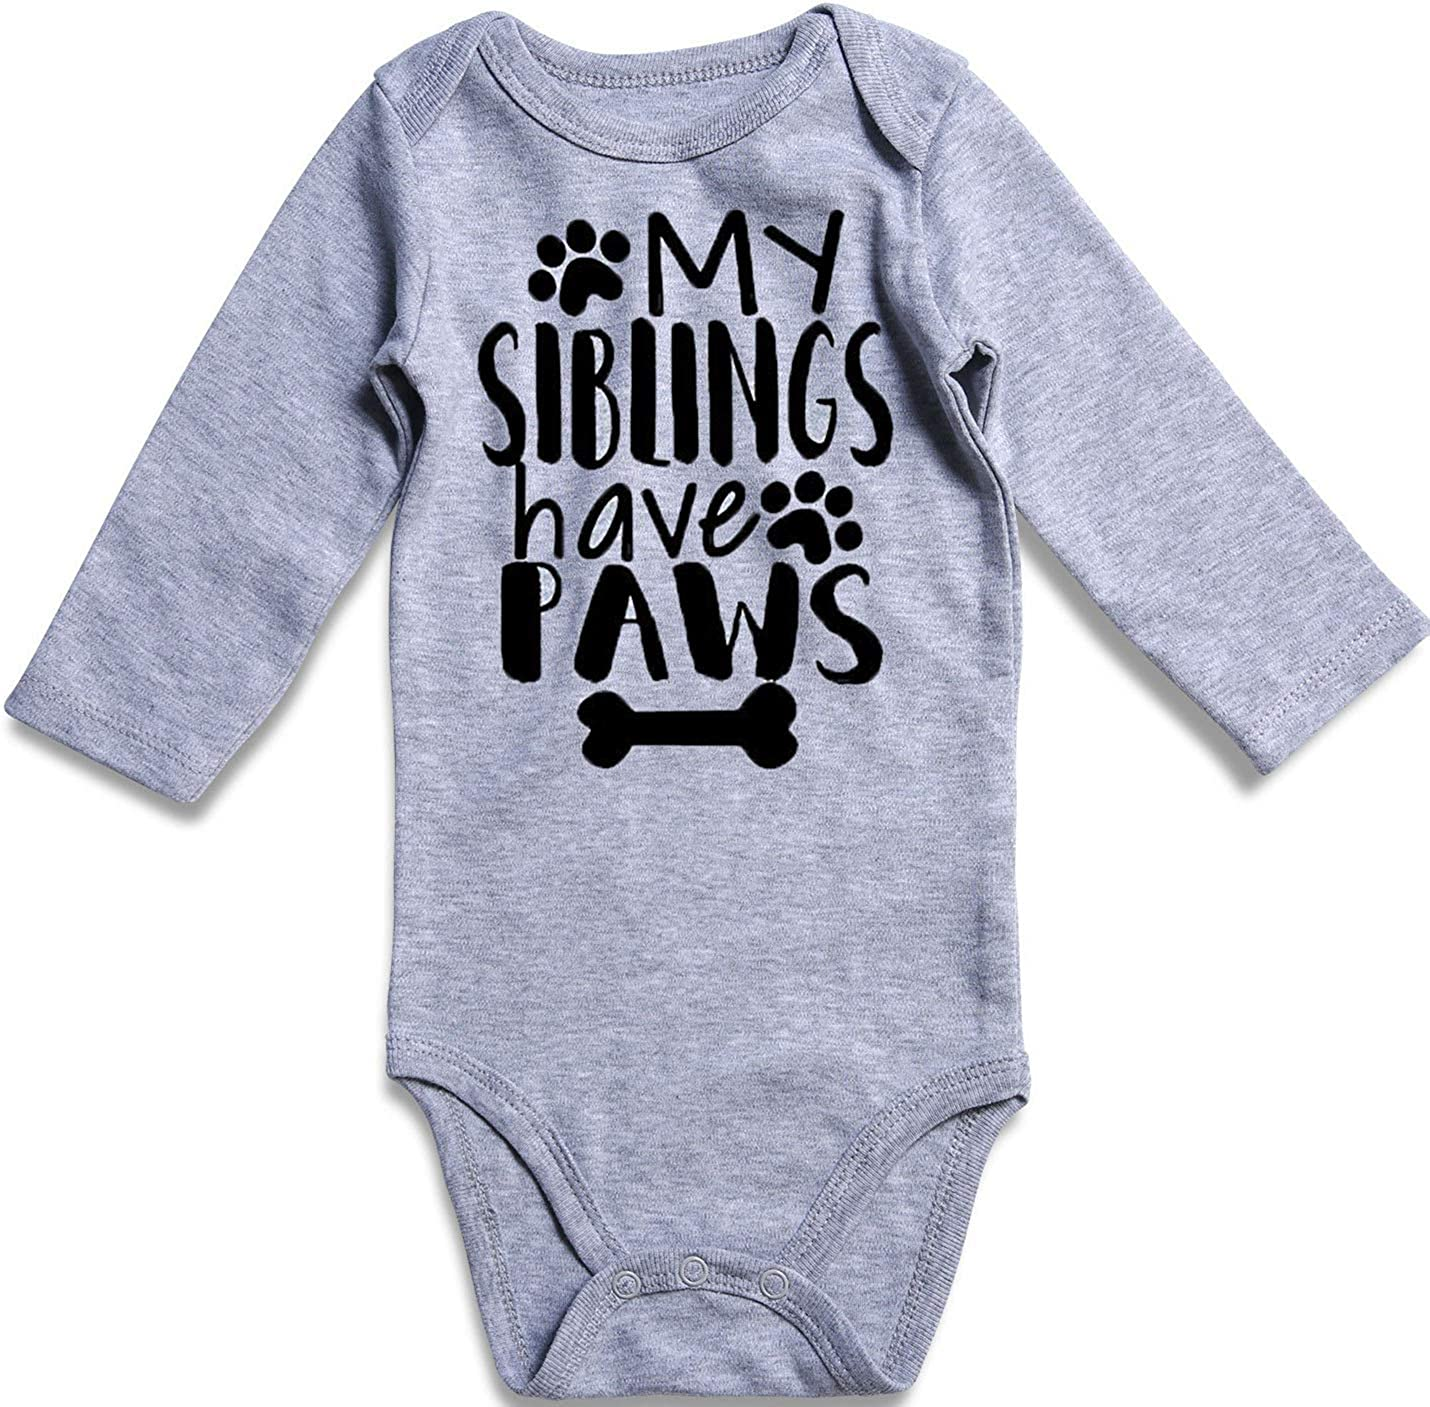 UNIFACO Unisex Baby Funny Onesie Short and Long Sleeve Bodysuits Outfits 0-18M